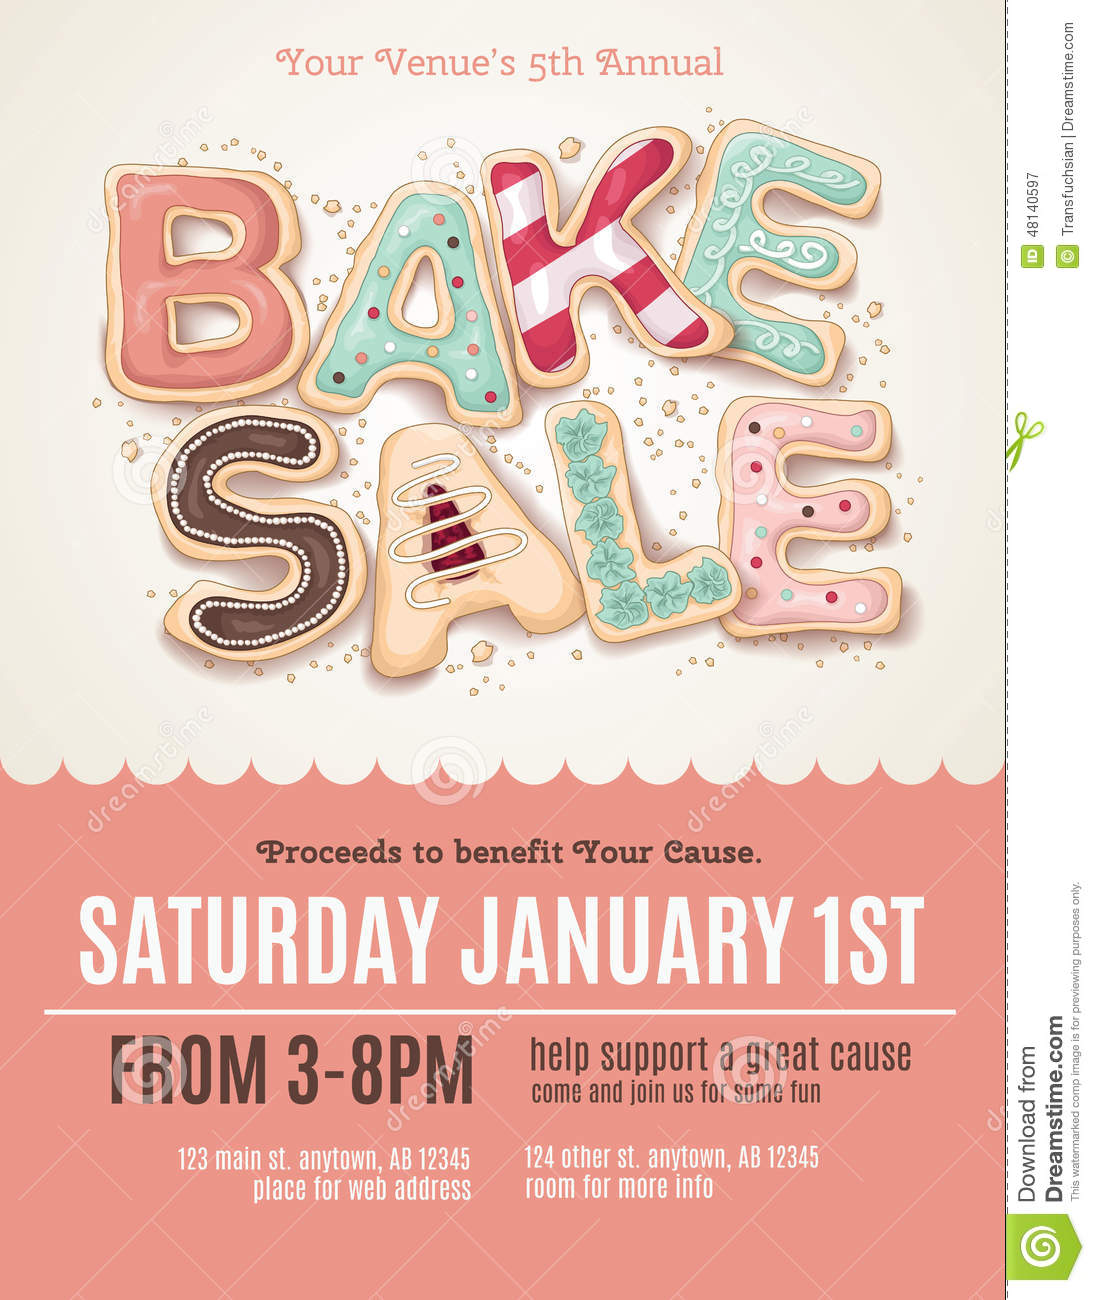 Fun Cookie Bake Sale Flyer Template Stock Vector - Image: 48140597